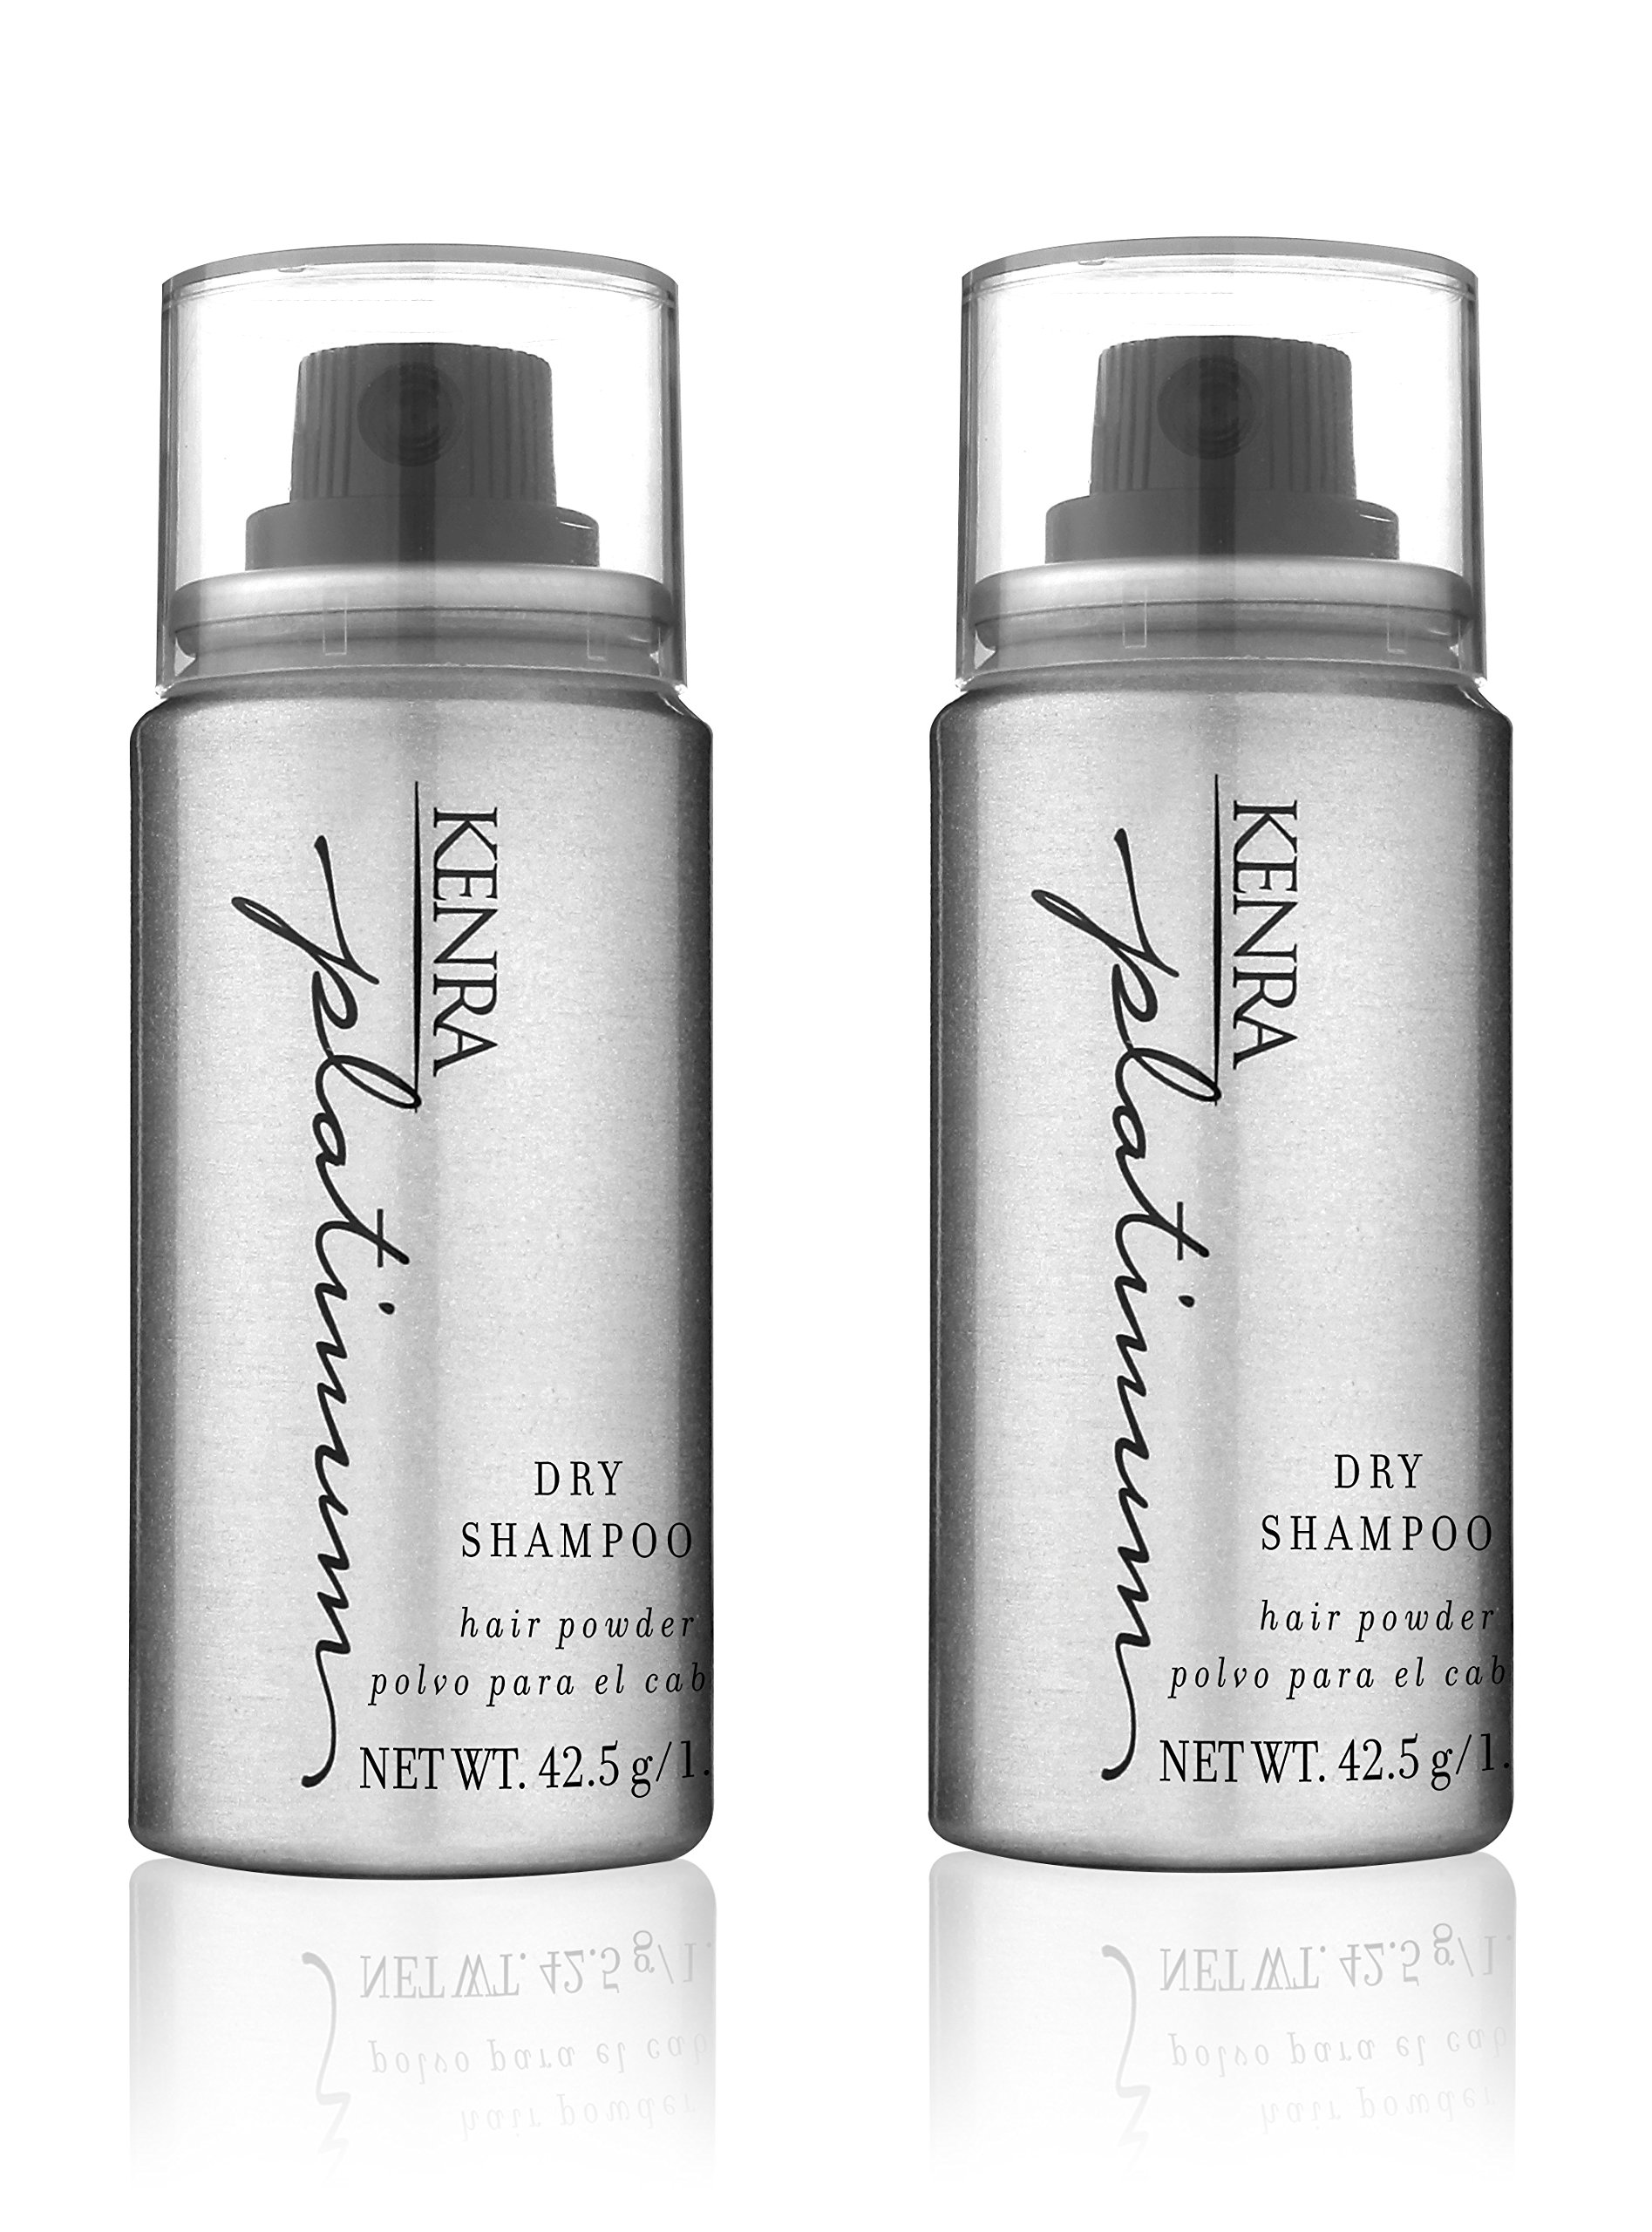 Kenra Platinum Dry Shampoo, 1.5-Ounce (2-Pack) by Kenra (Image #1)